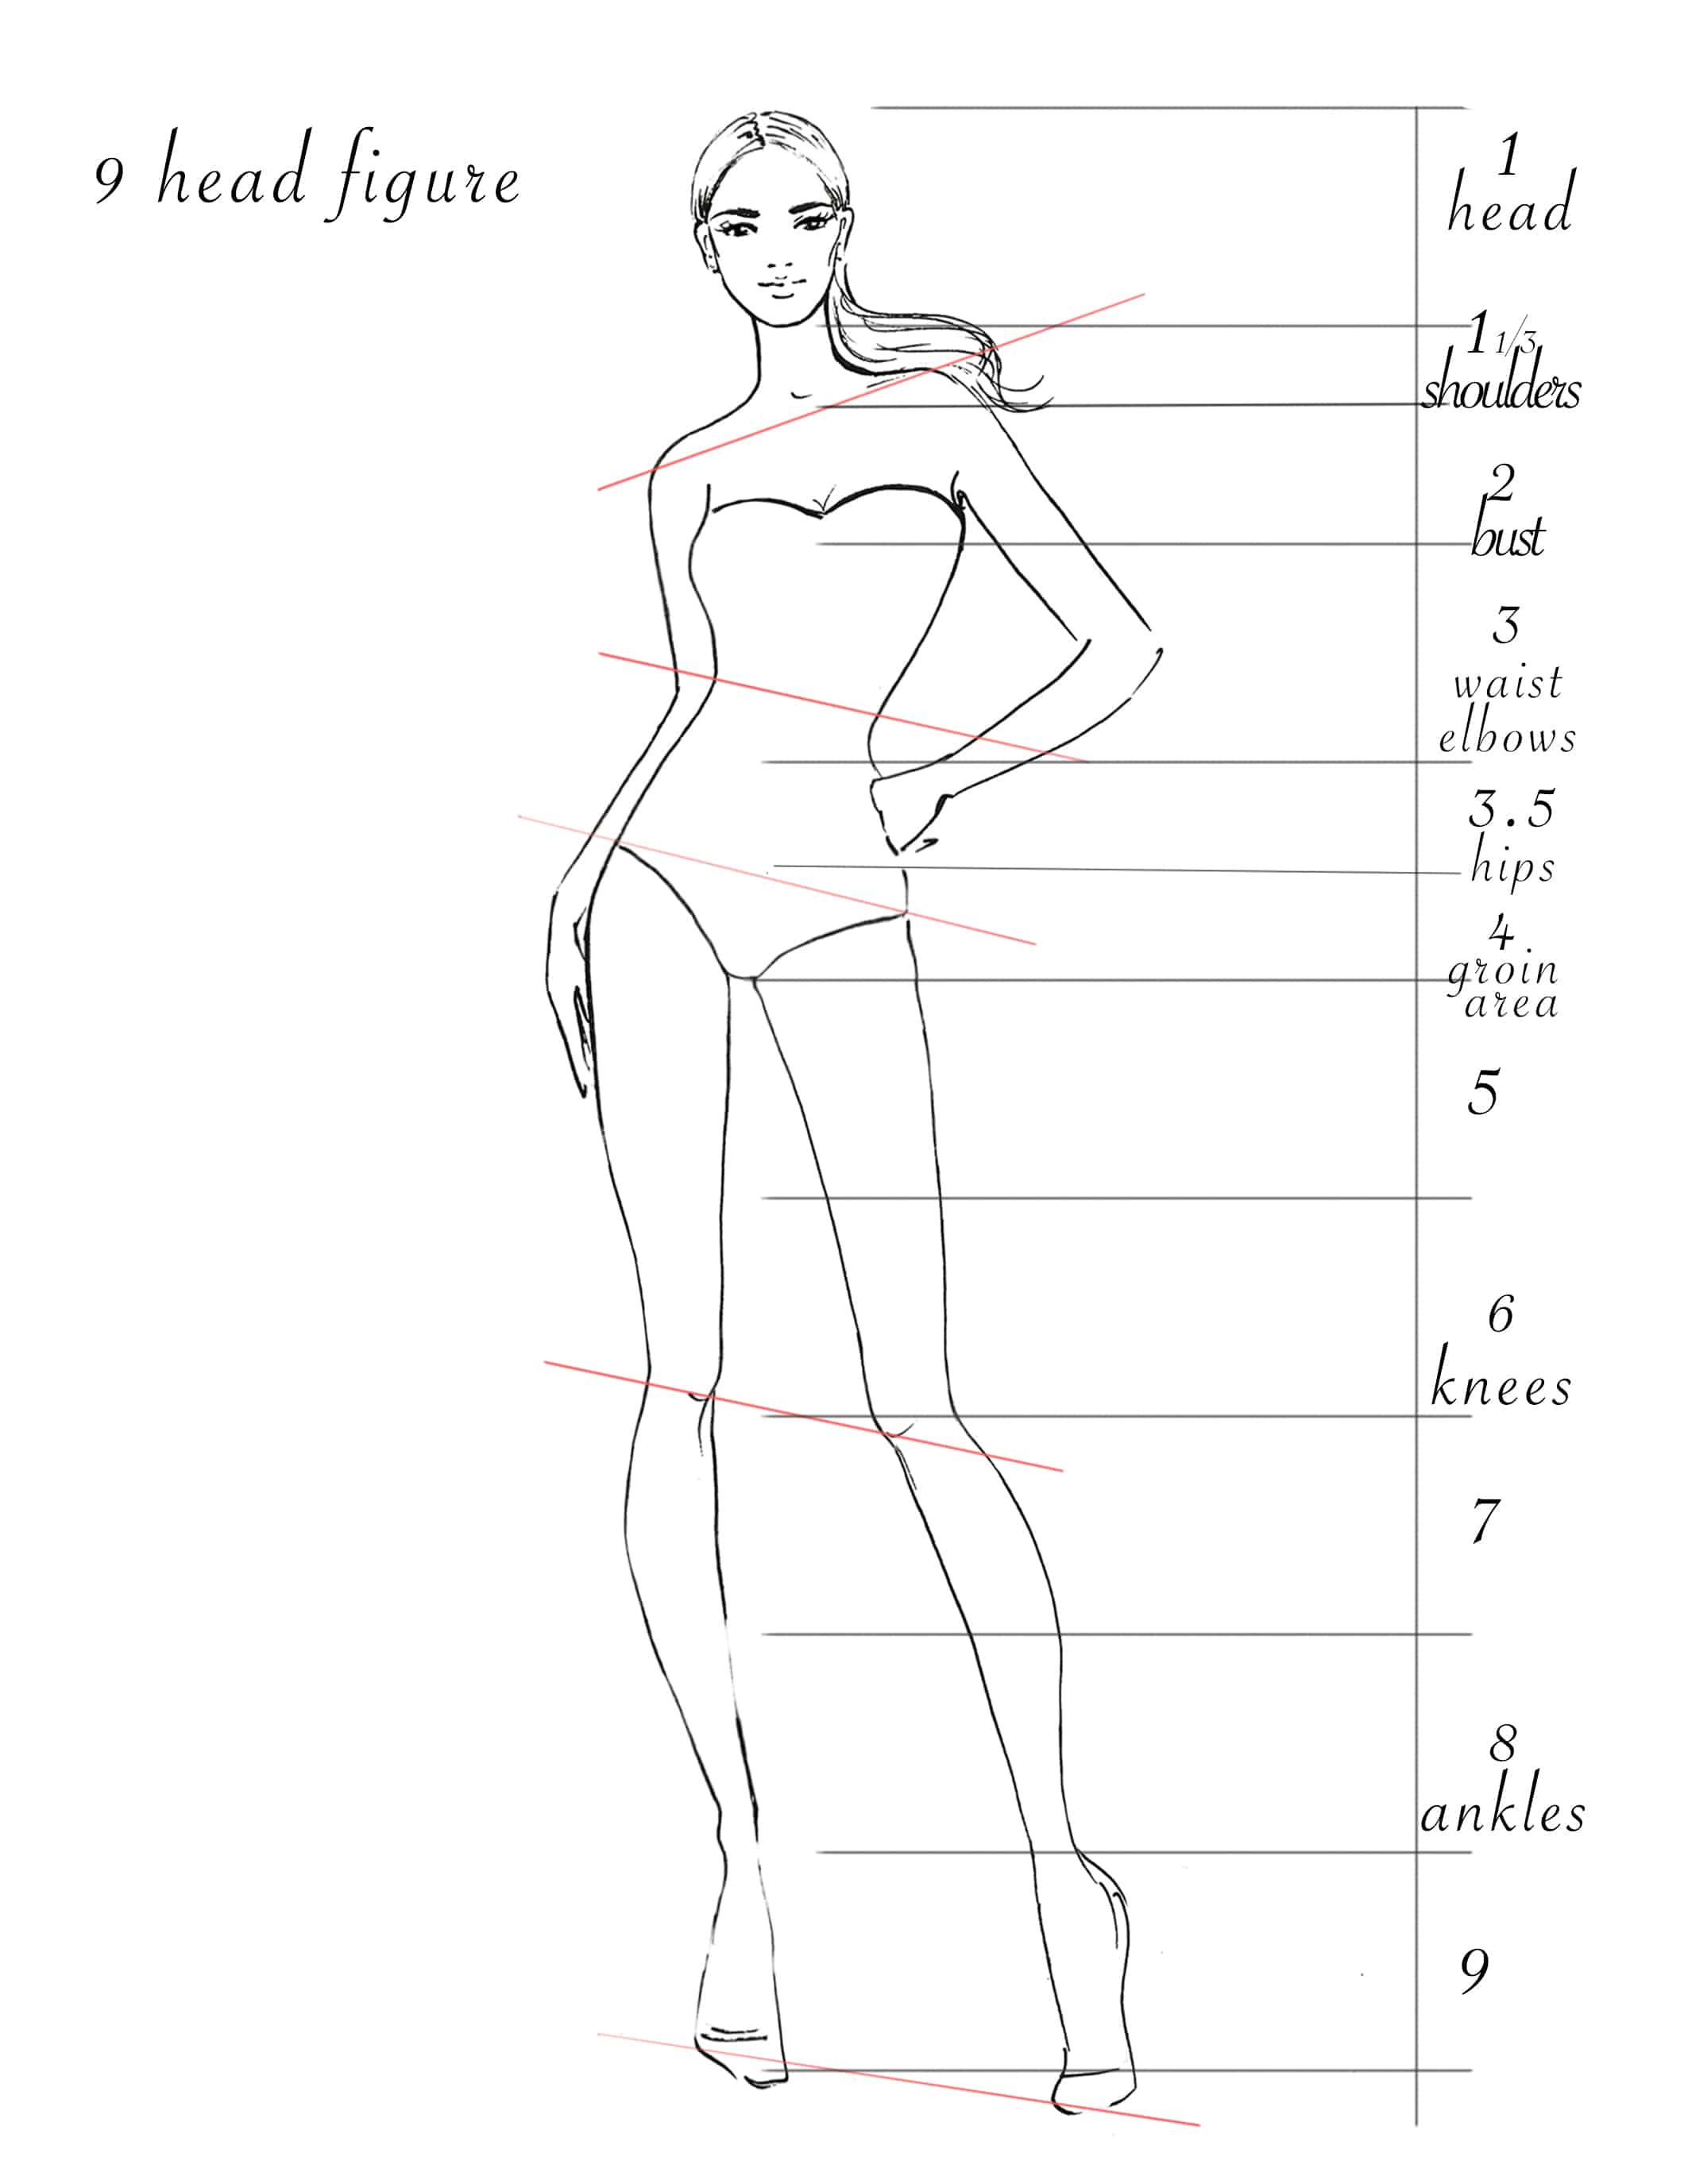 fashion illustration template, fashion figure